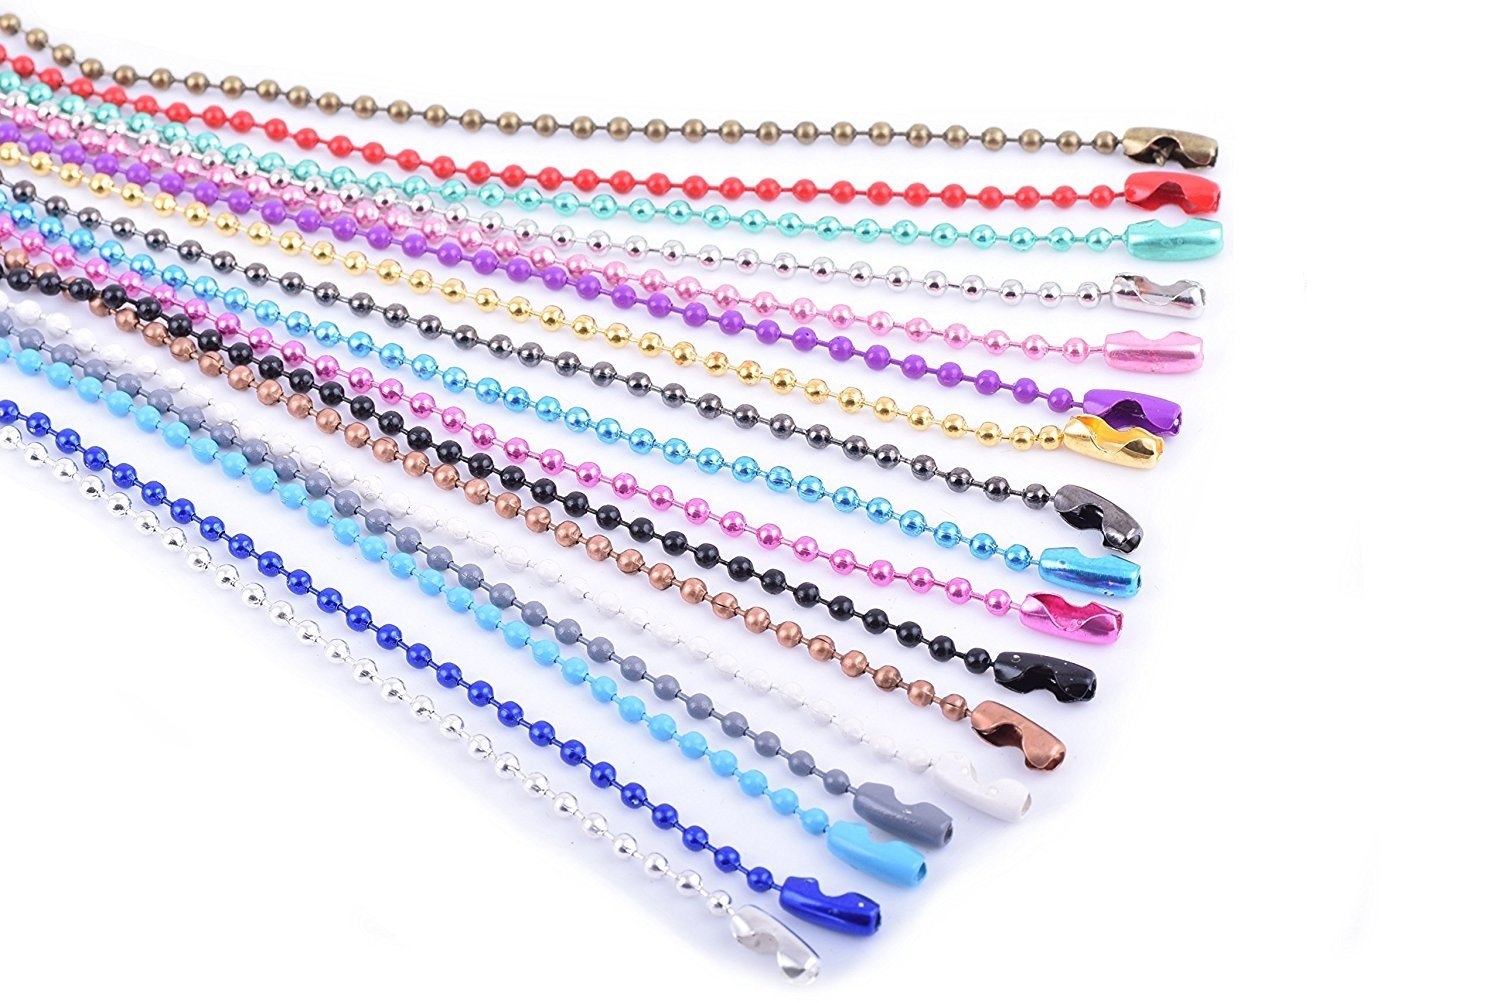 KONMAY 20pcs Mixed Color 2.4mm Size #3 Beads Ball Chain Necklace With Connectors (24'') NCC-MIX24